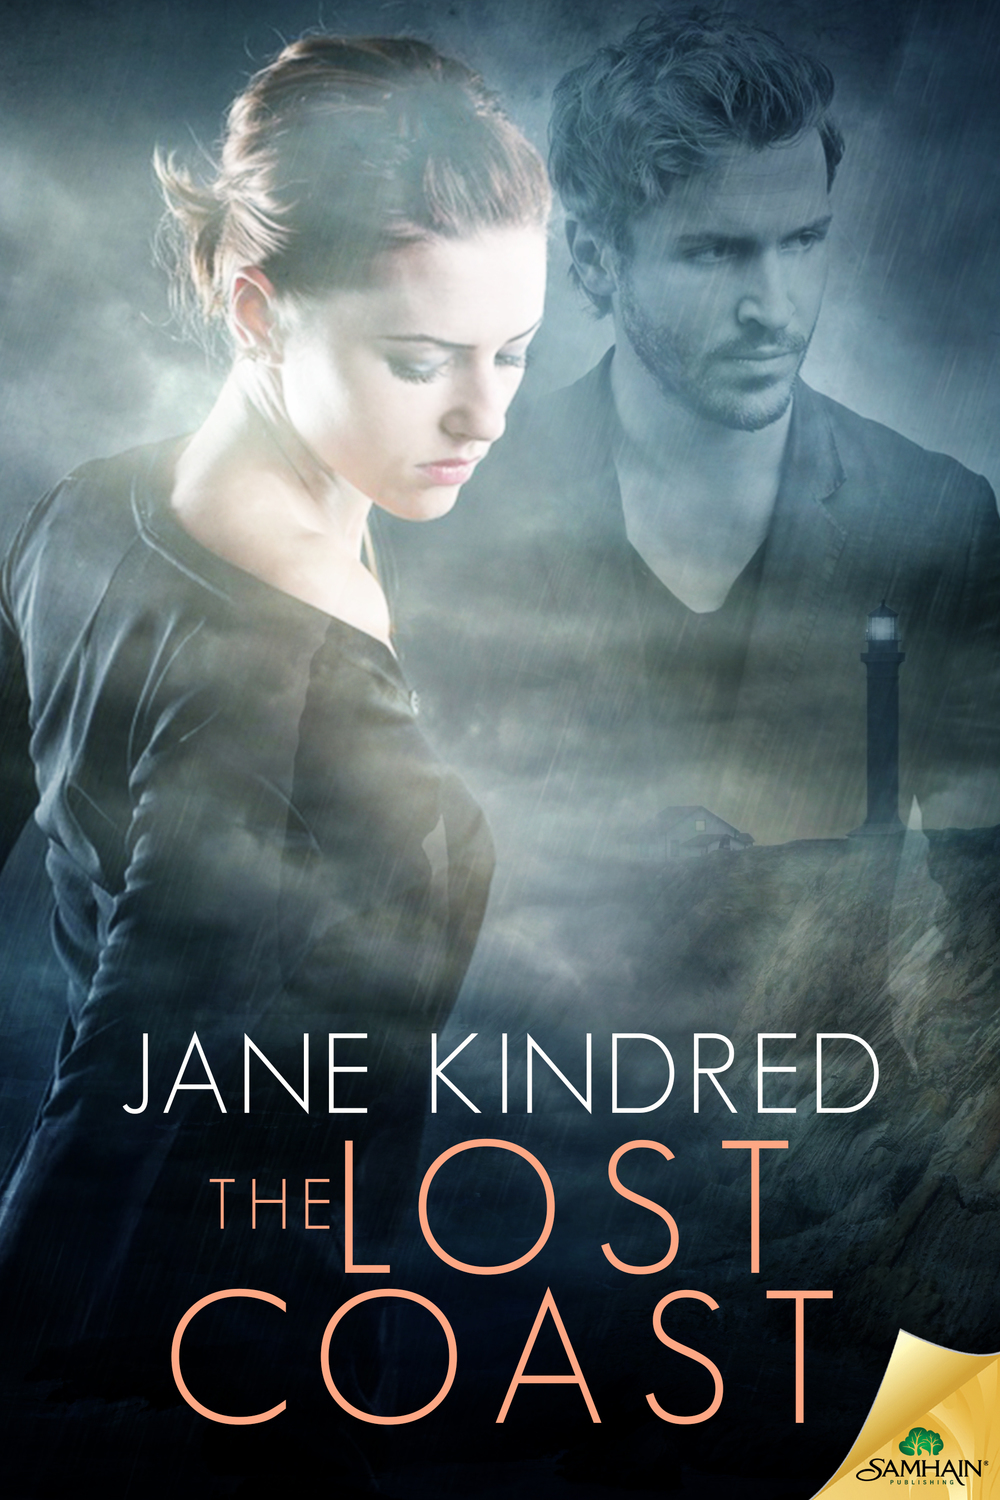 The Lost Coast by Jane Kindred